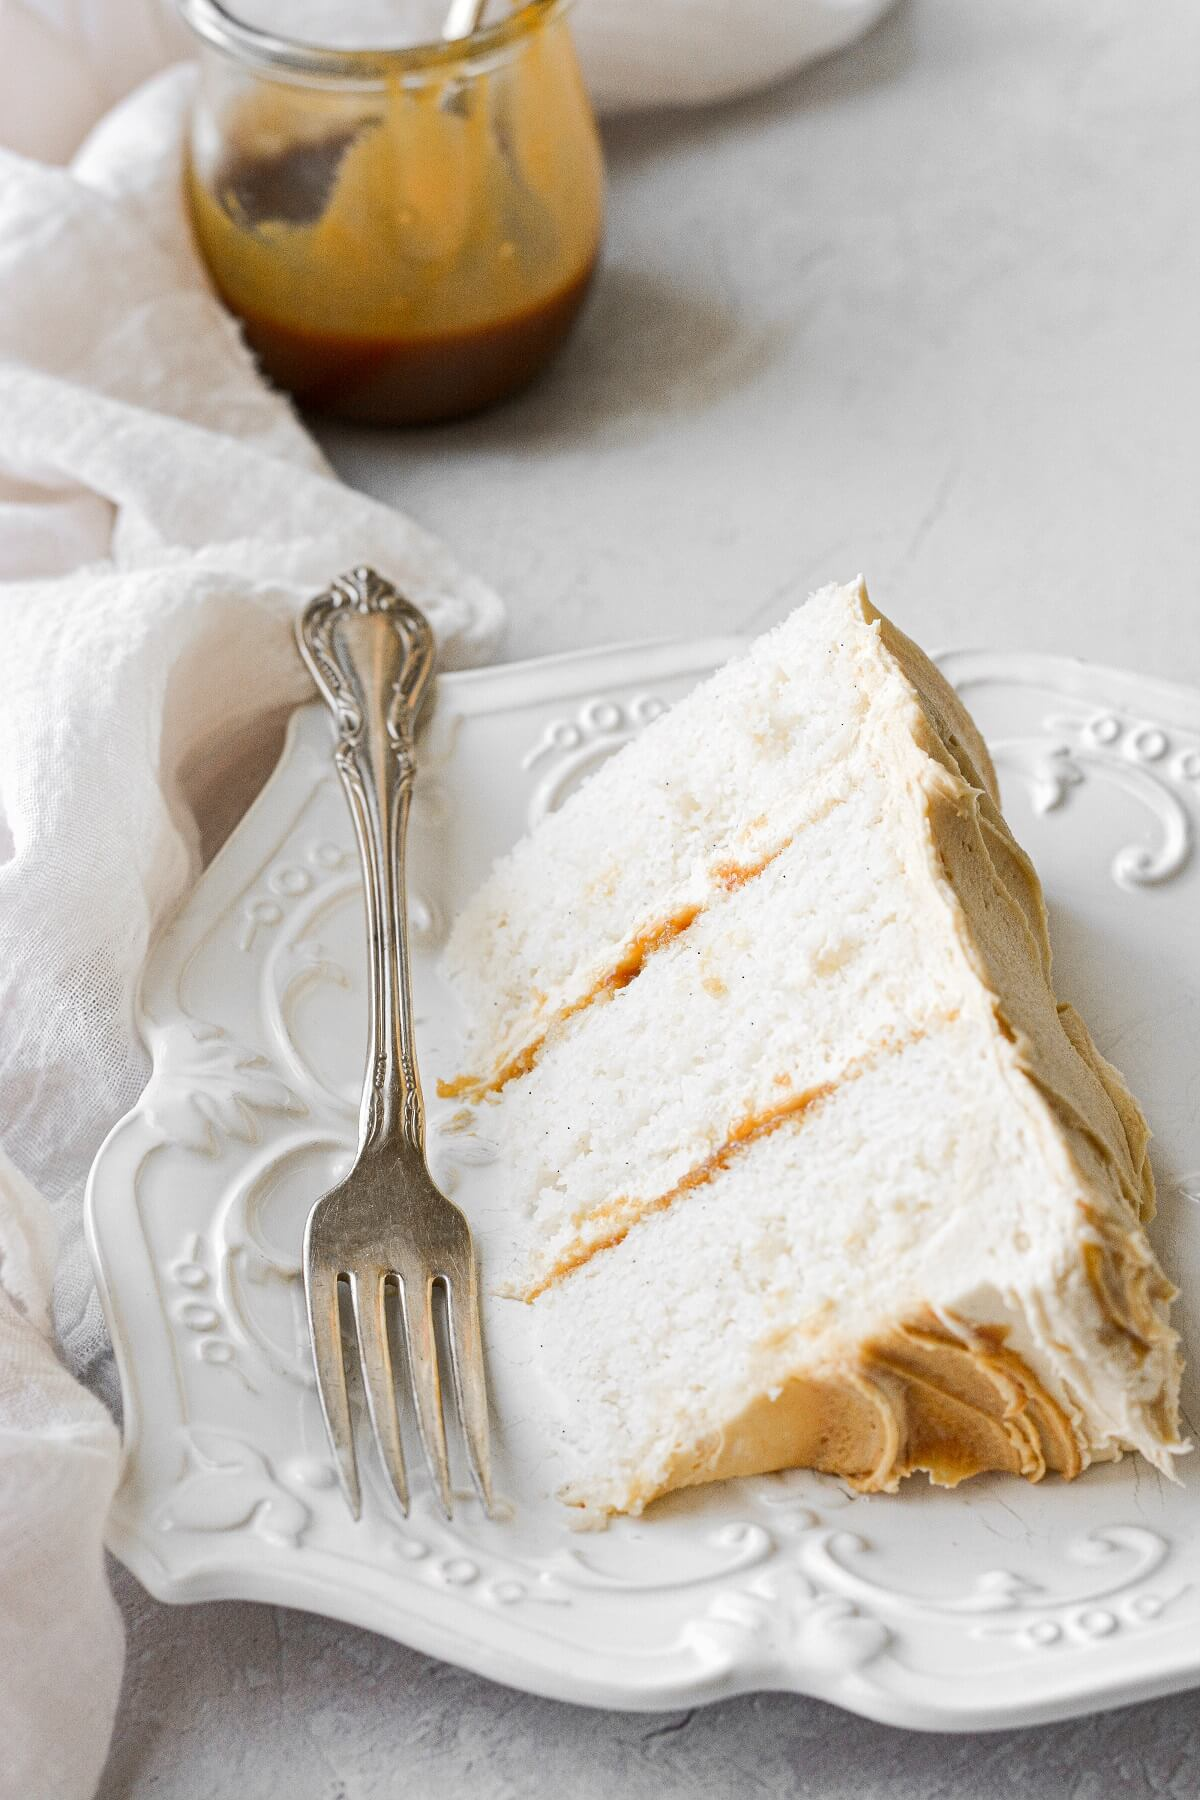 A slice of vanilla cake with salted caramel buttercream.